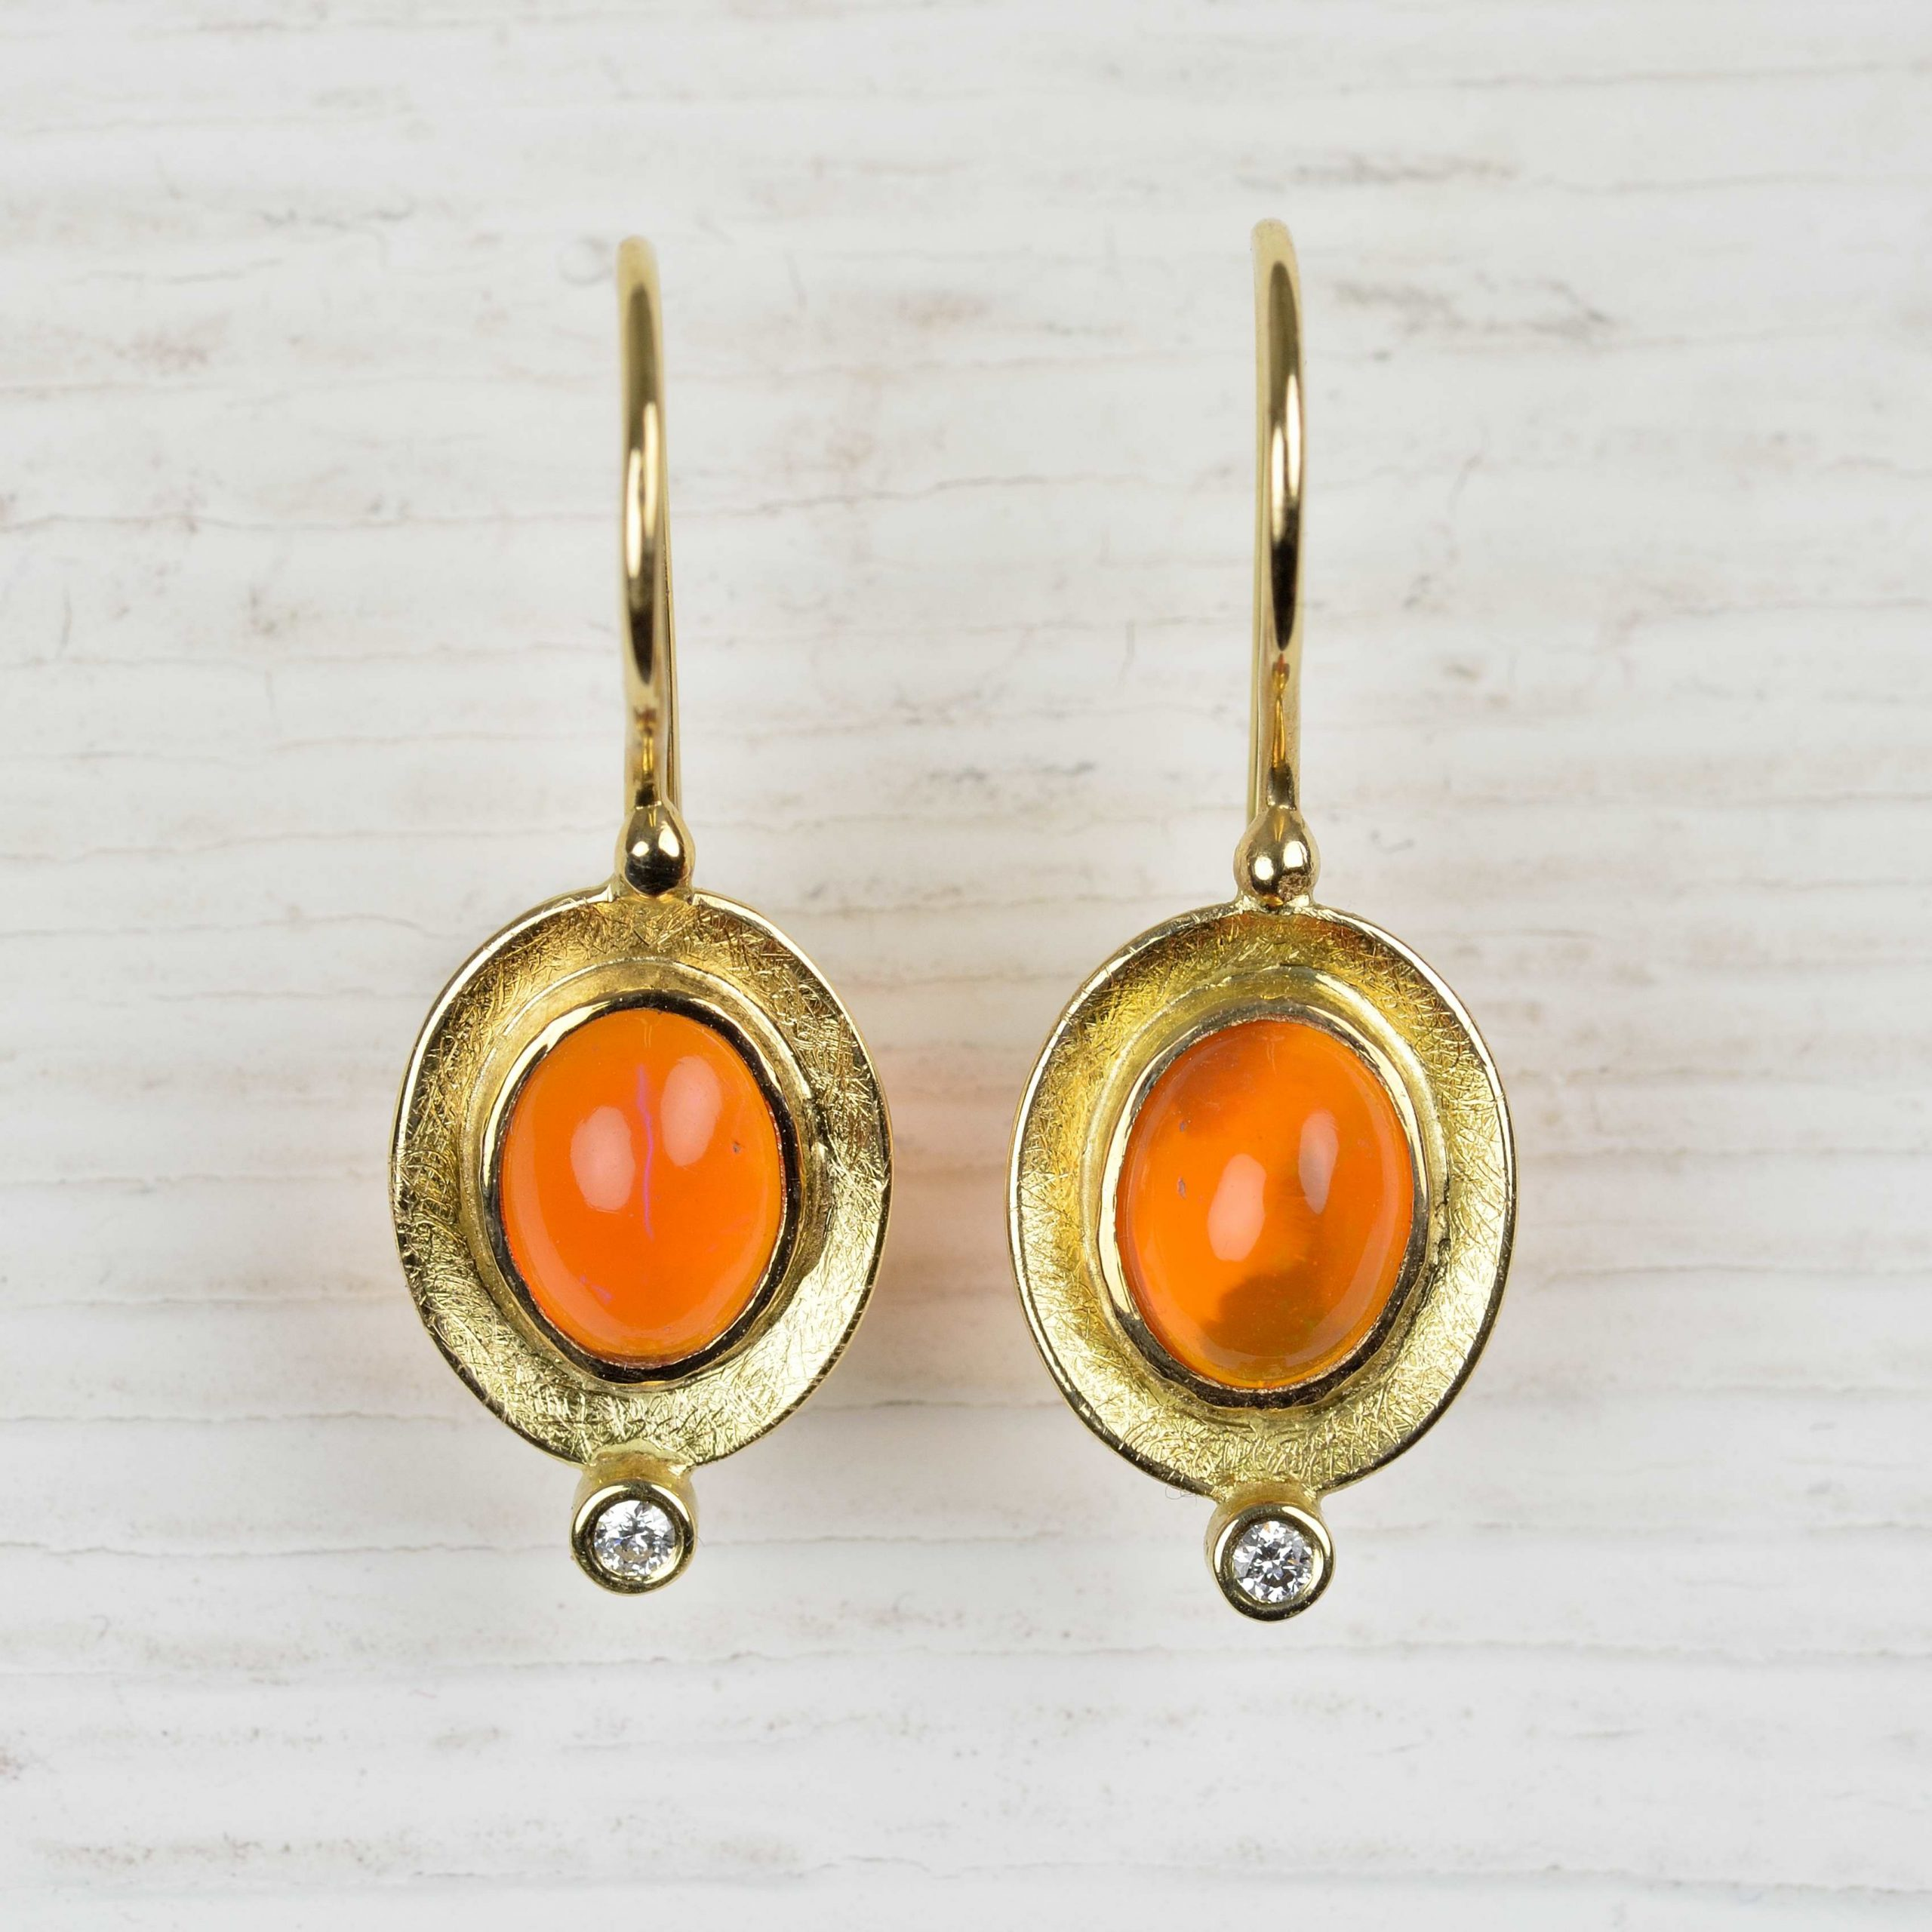 18ct gold earrings with fire opal and diamonds